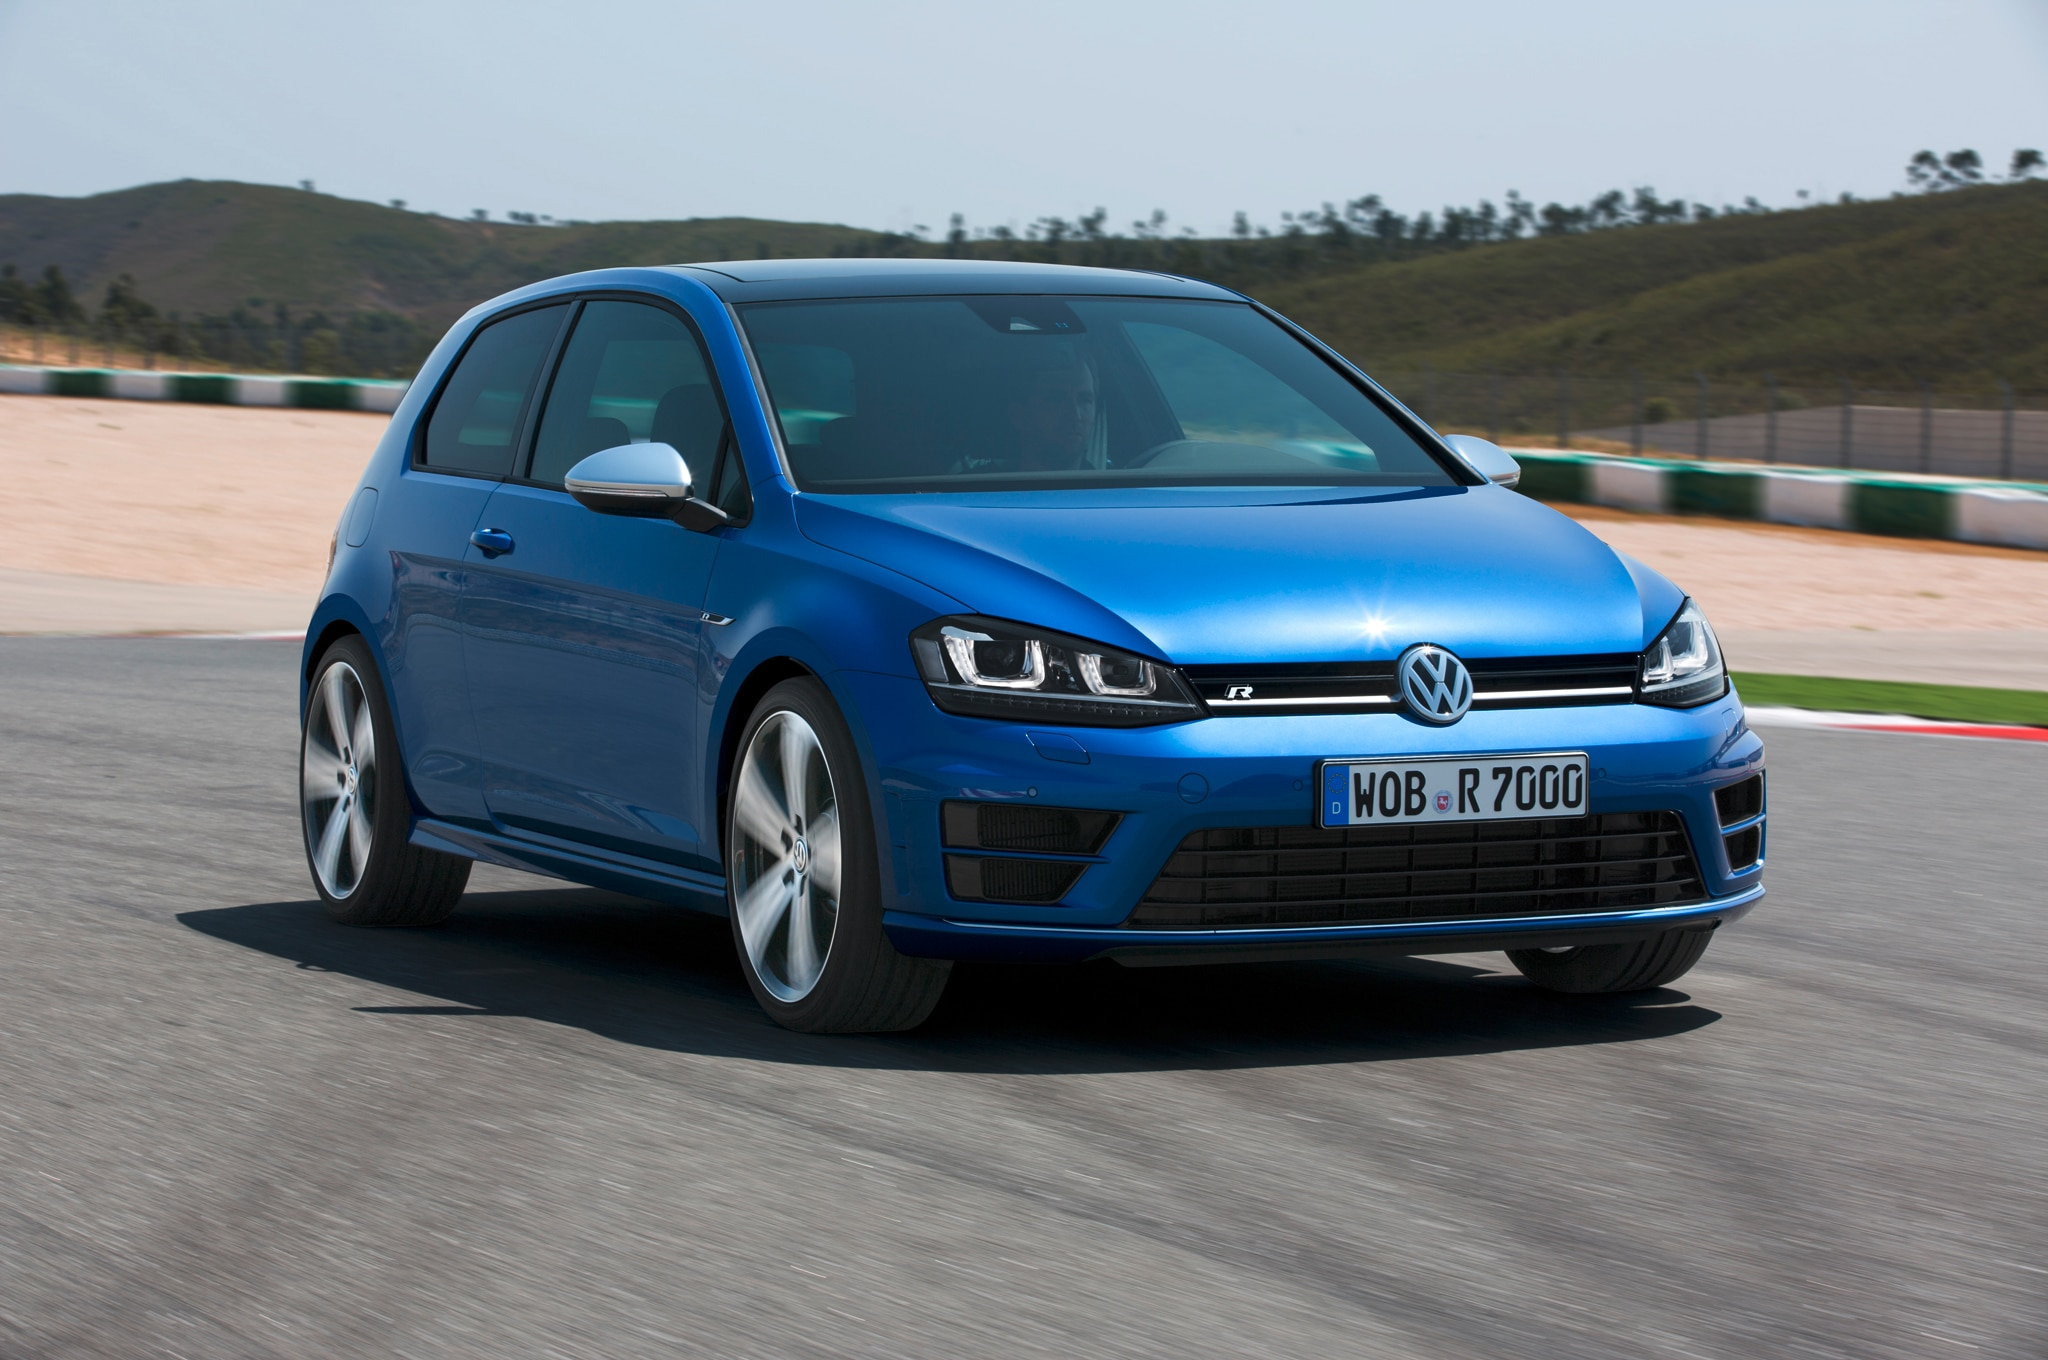 2015 Volkswagen Golf Launch Edition Priced at 18815